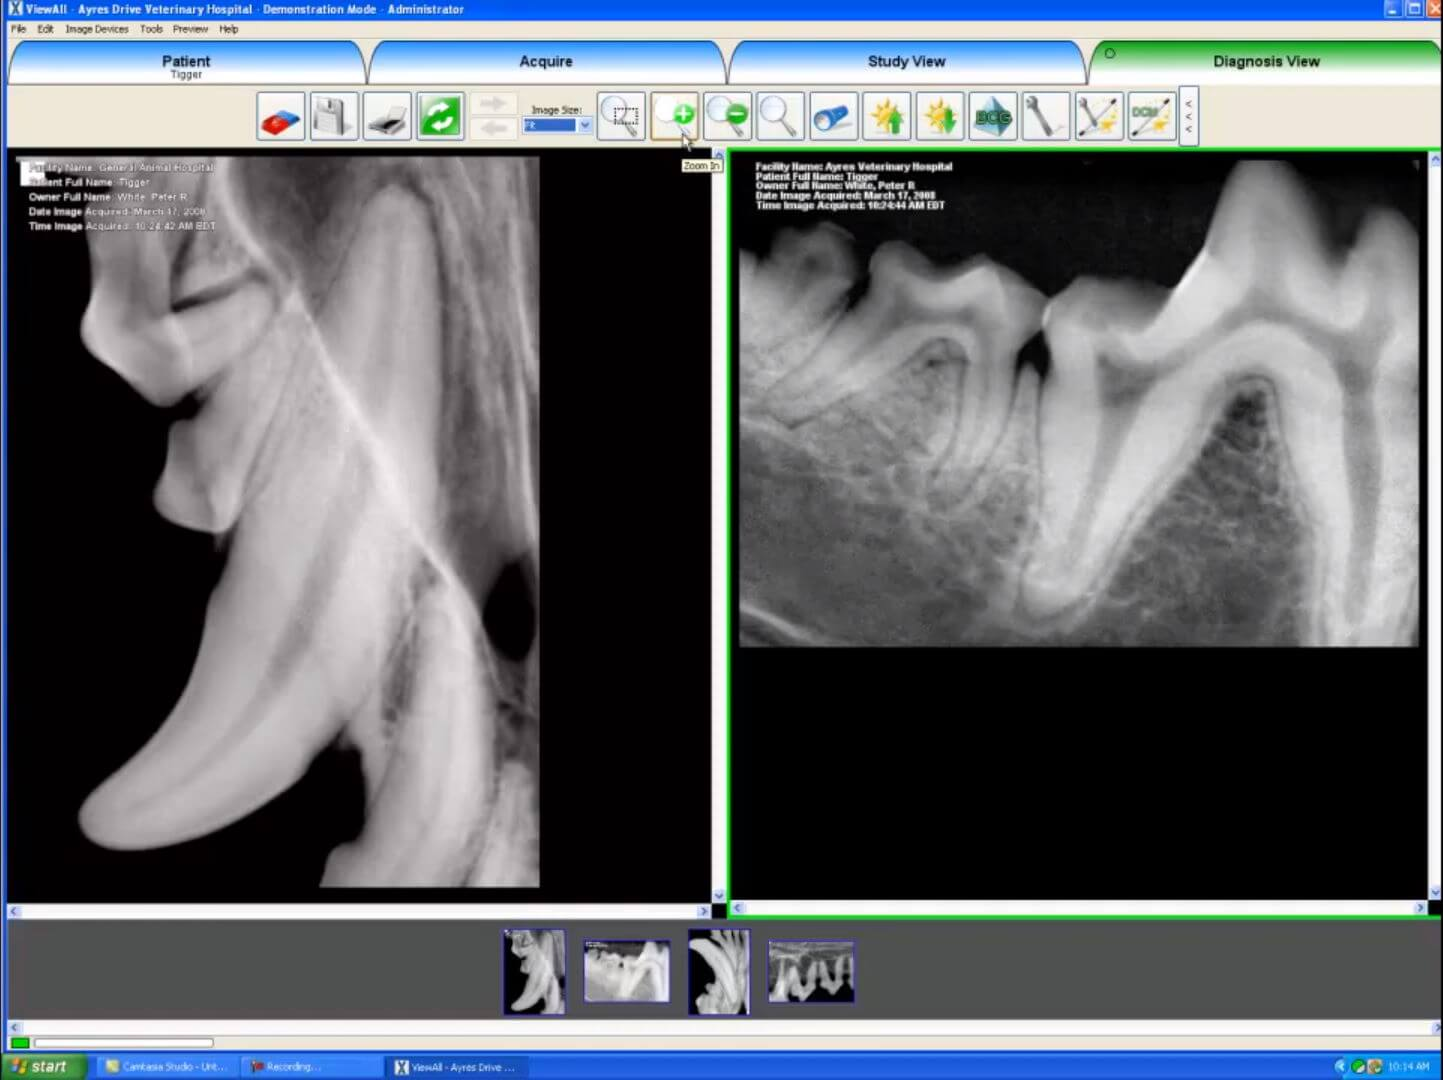 Dicom Software Diagnosis Screen Example with x-rays